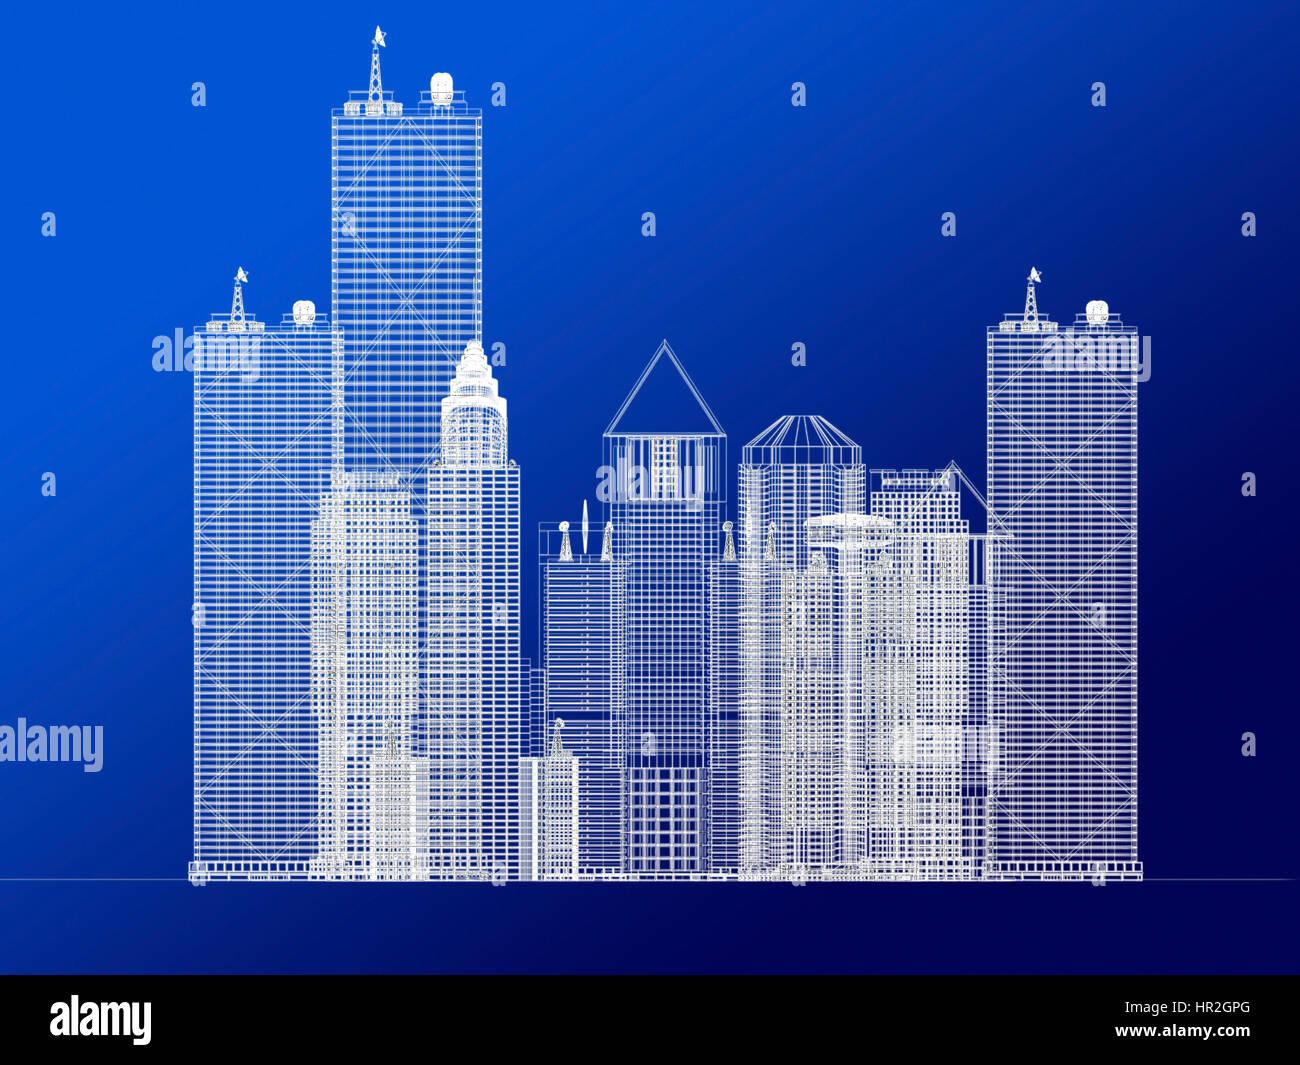 Architecture blueprint of corporate buildings over a blue background architecture blueprint of corporate buildings over a blue background malvernweather Choice Image